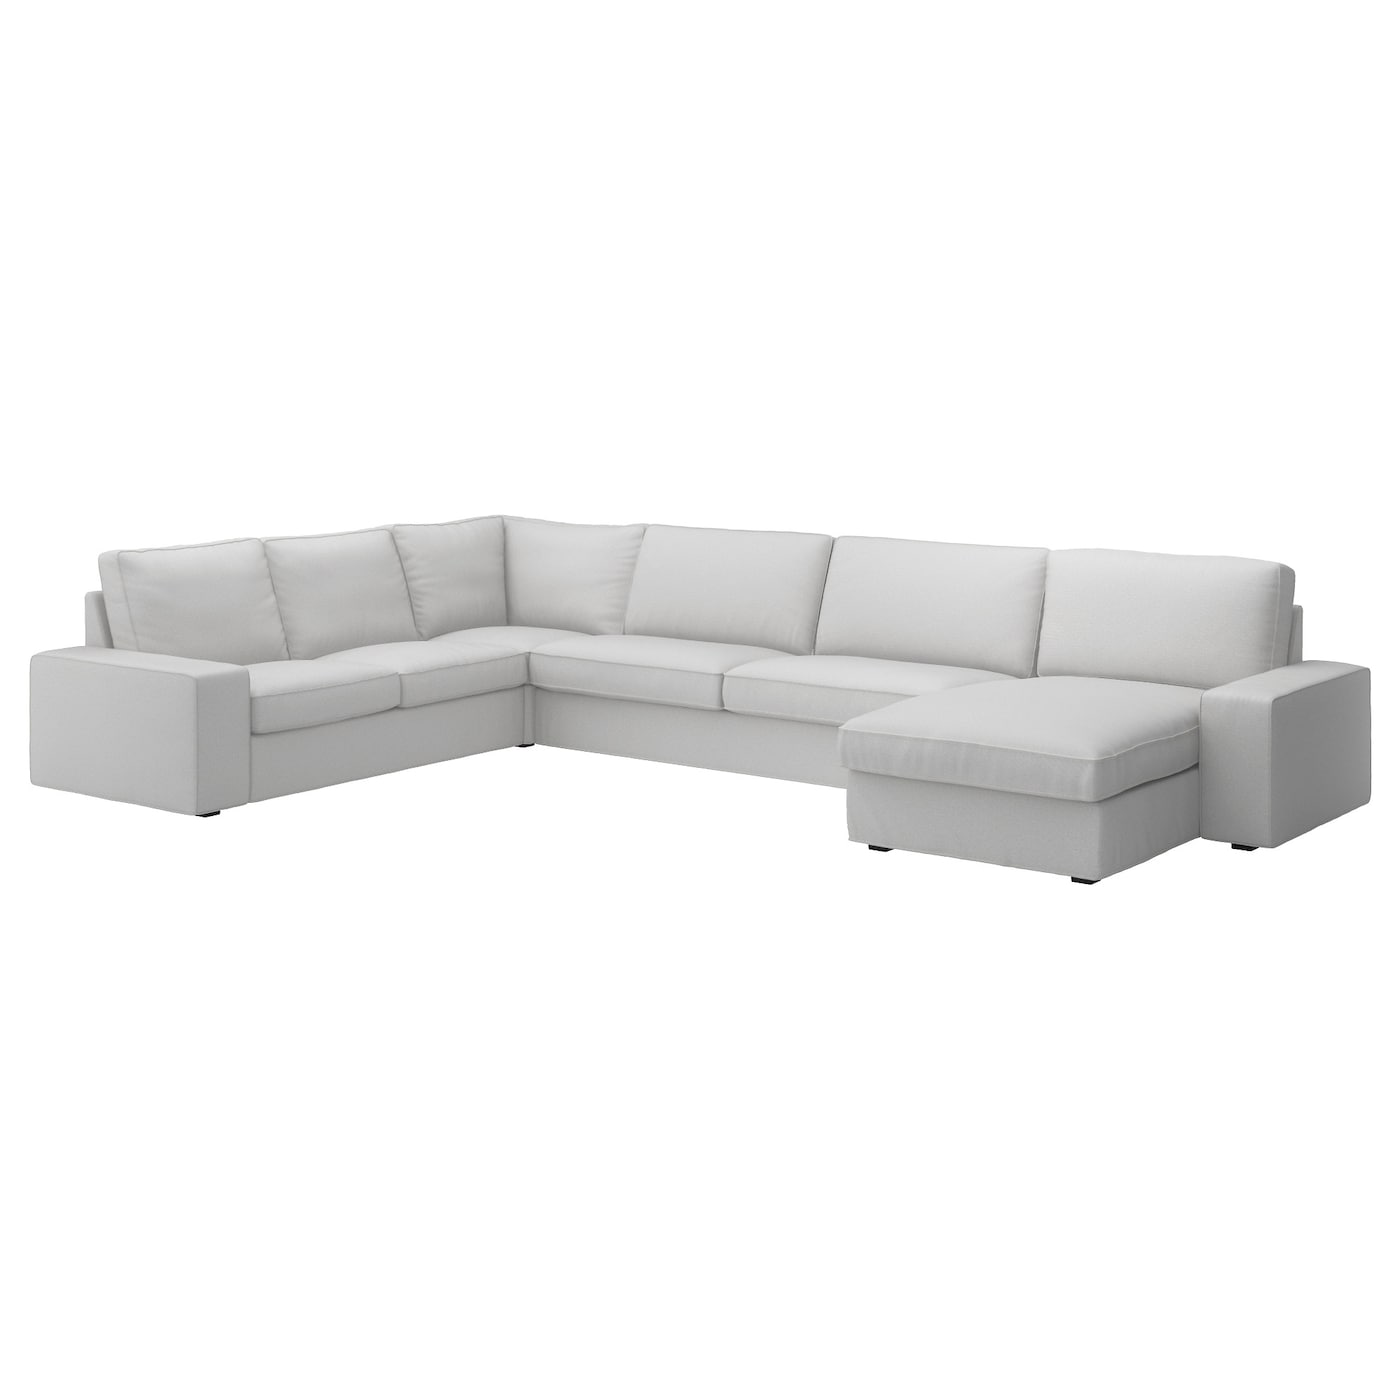 Kivik leather sofa dimensions for Dimension chaise longue